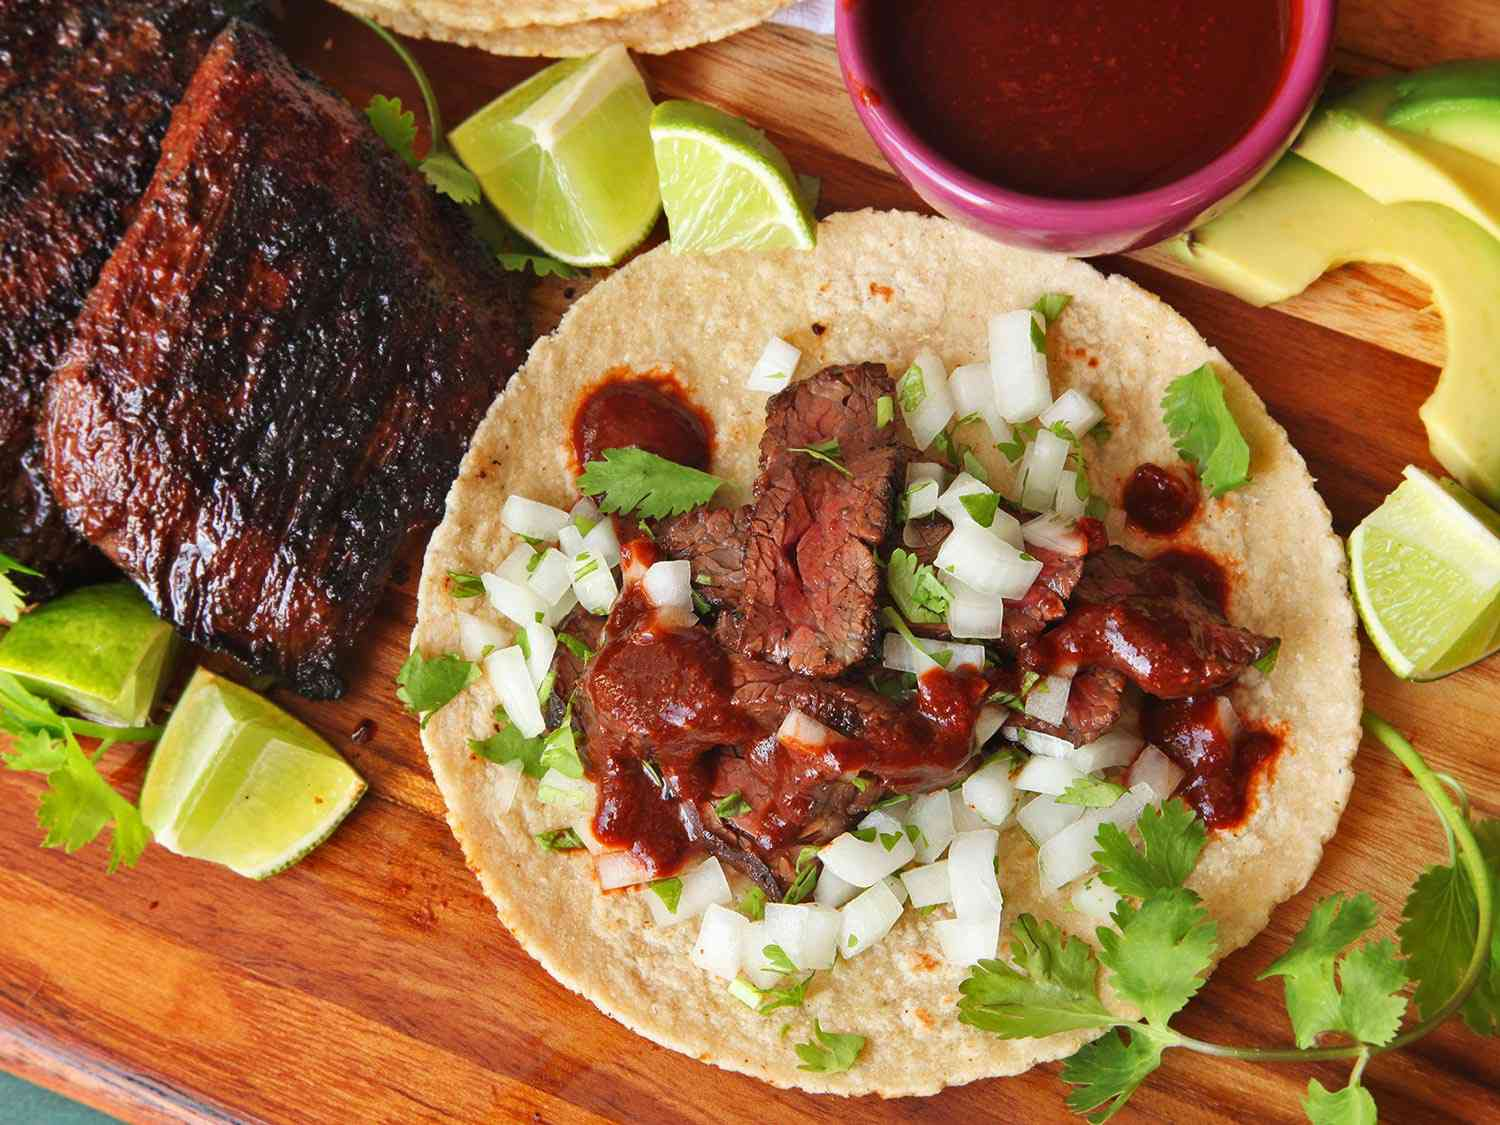 A carne asada taco, made with grilled skirt steak, on a wooden cutting board with additional steak, limes, avocados, cilantro, and salsa surrounding it.